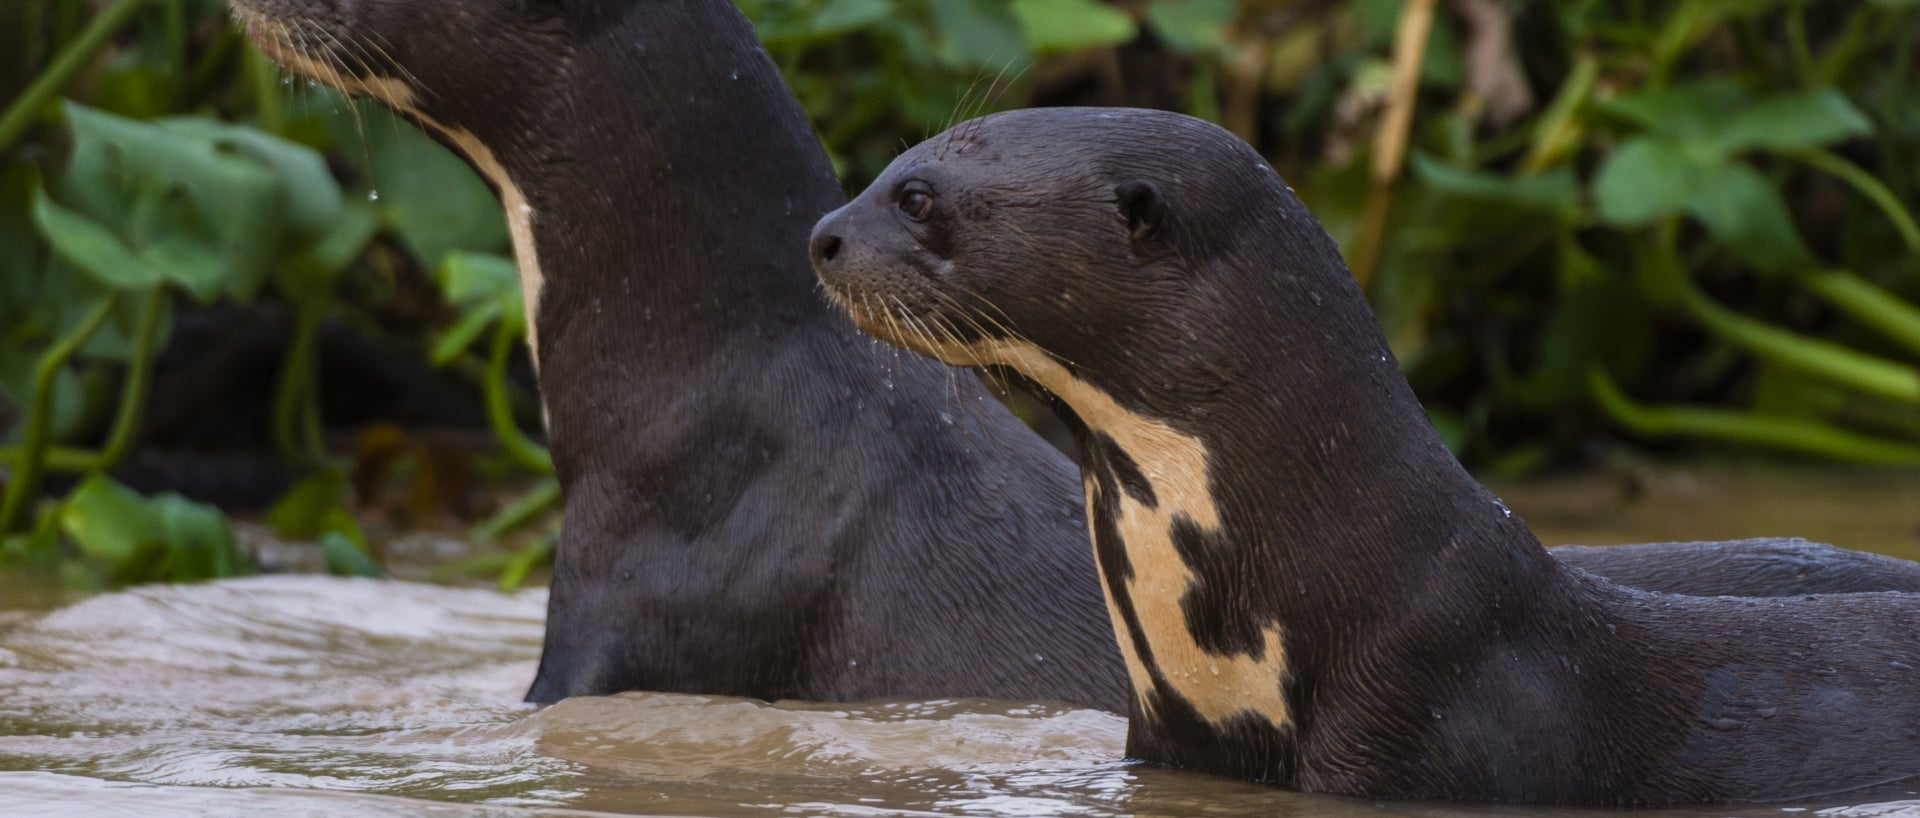 Giant river otter (Pteronura brasiliensis), Pantanal, Mato Grosso, Brazil. (Photo by: Sharpshooters/VW PICS/Universal Images Group via Getty Images)